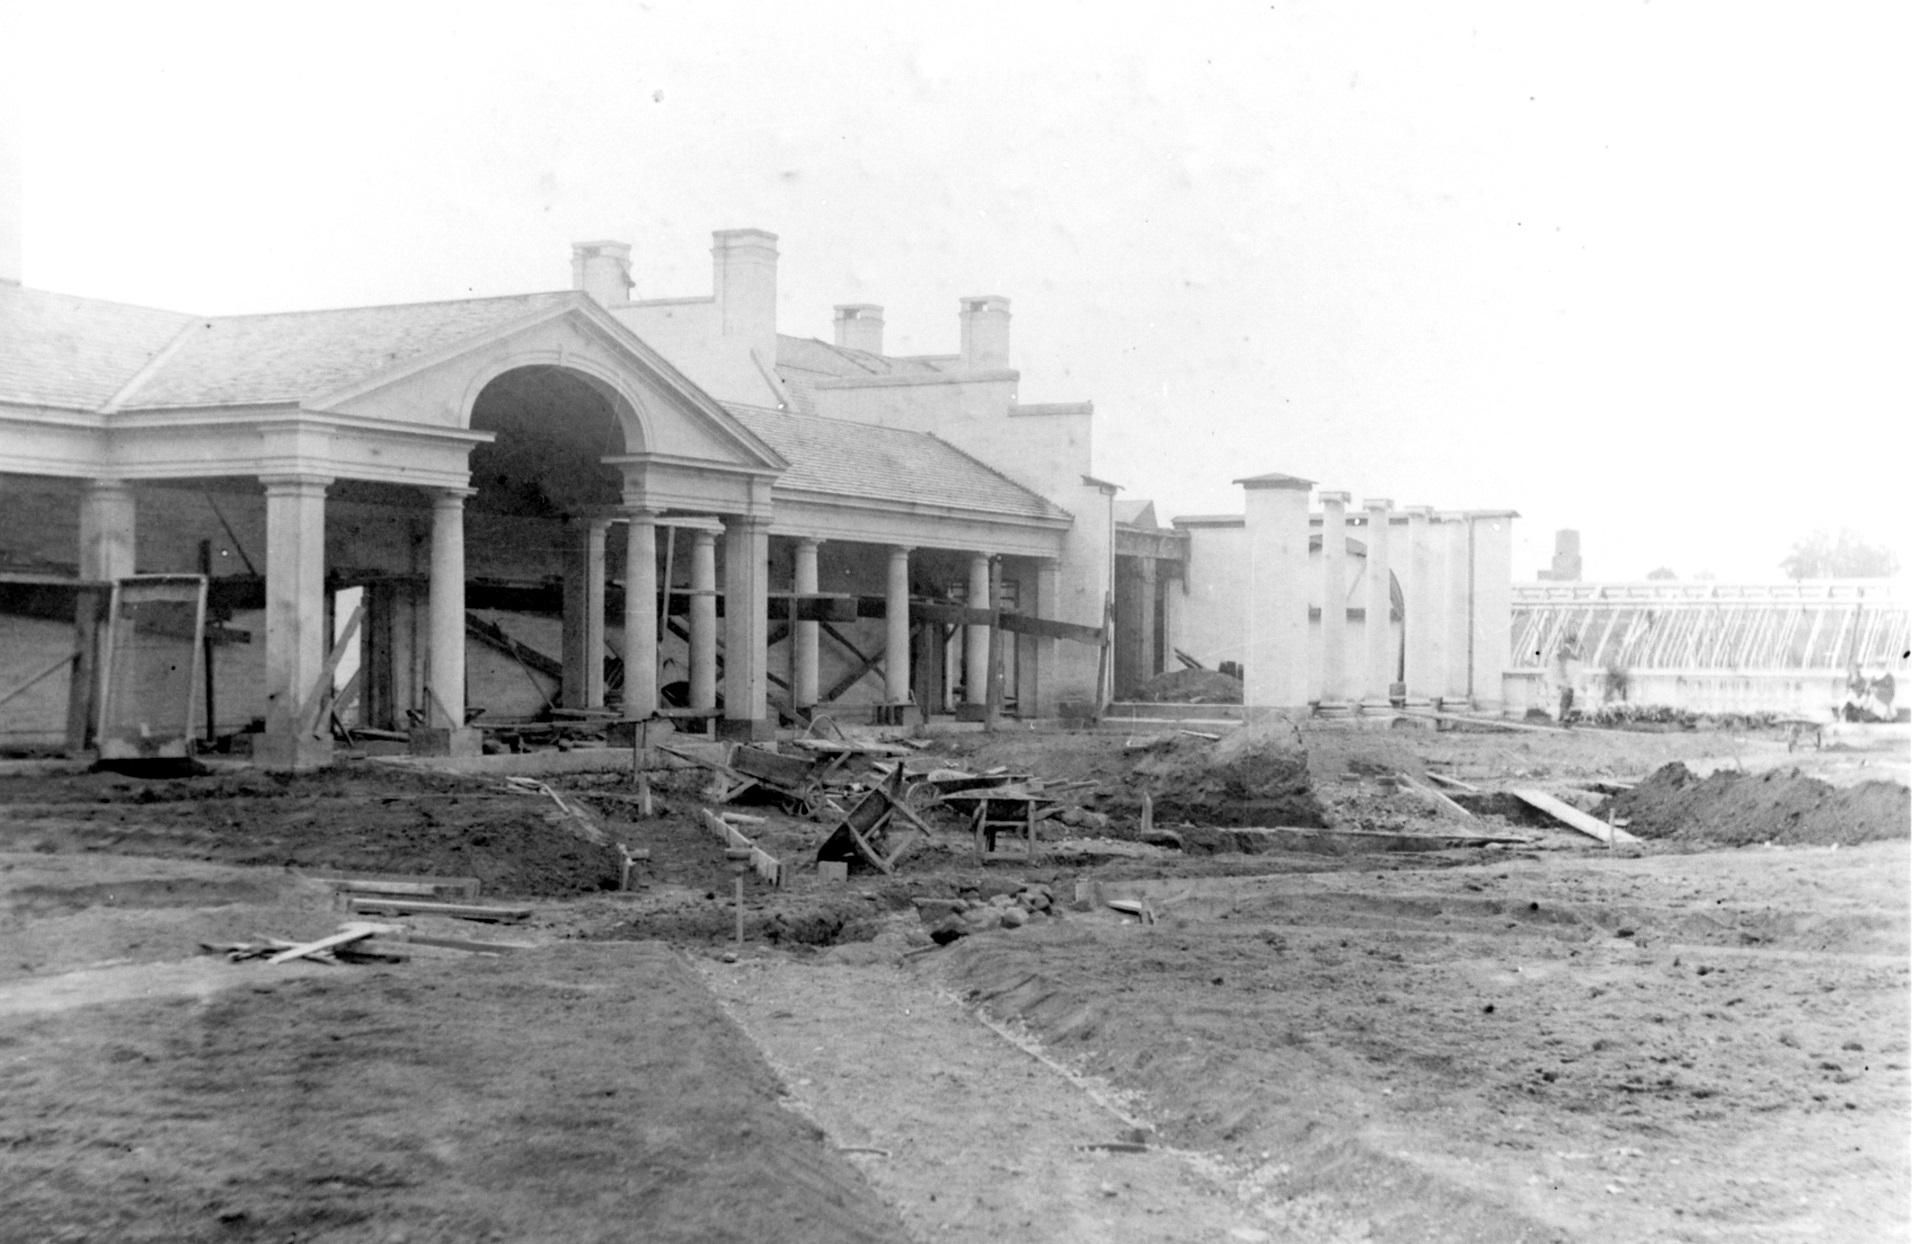 Construction of the Colonnade, 1903